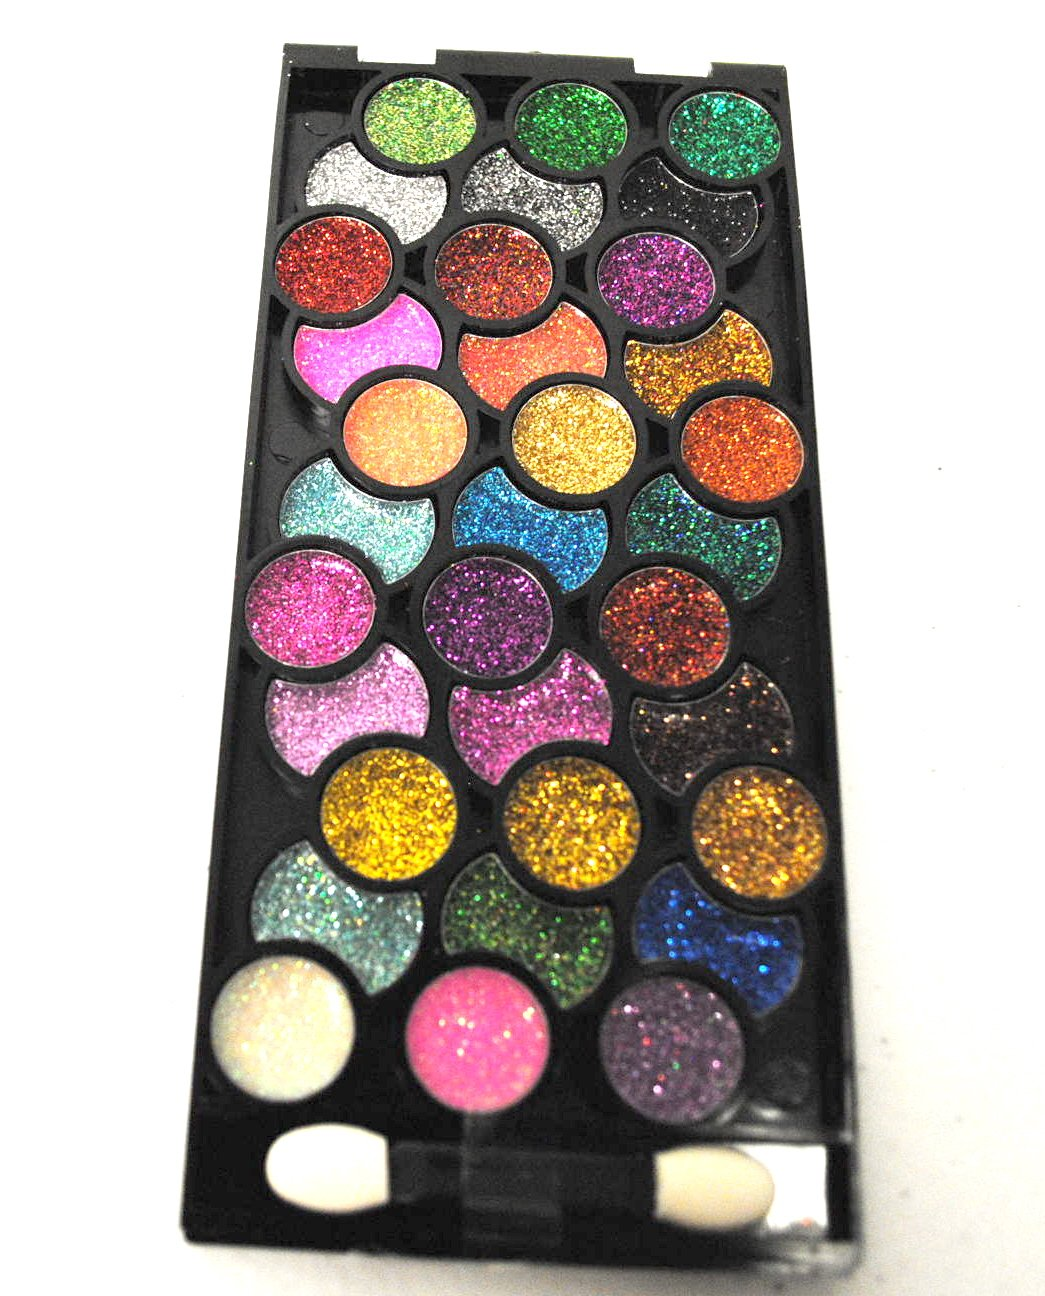 Dazzling 33 Color Neon Glitter Eyeshadow Makeup Kit ...